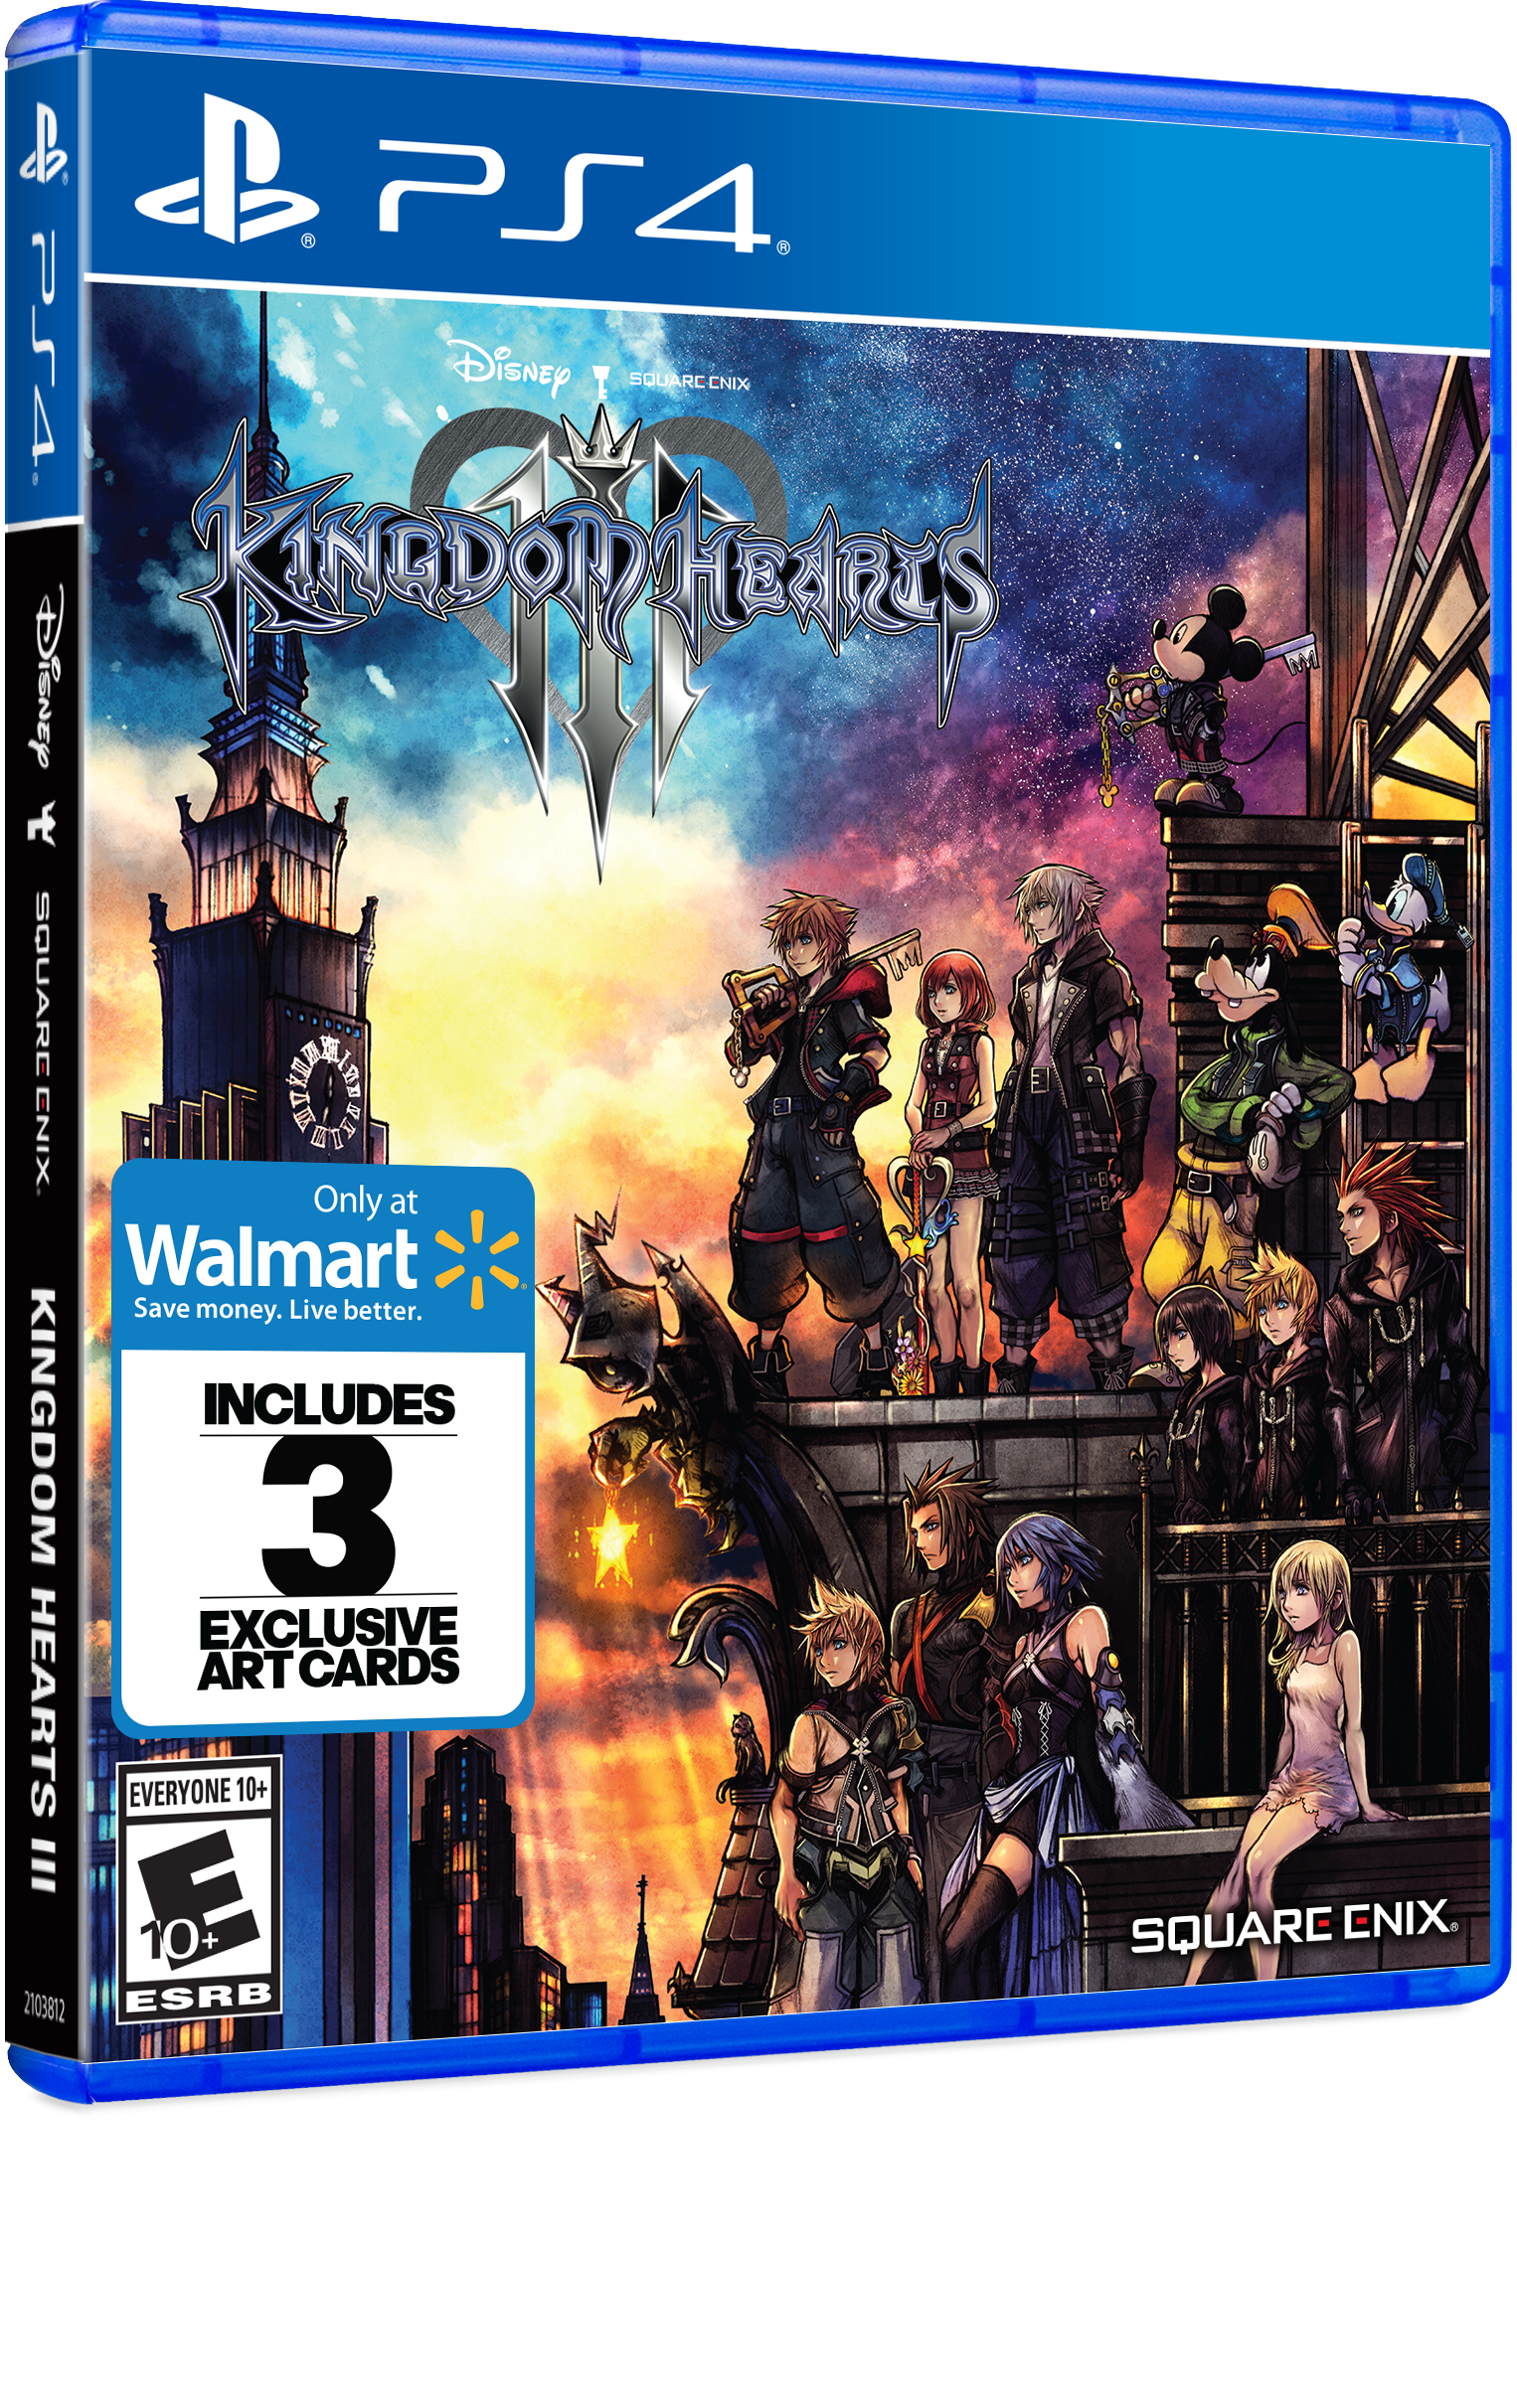 Walmart Exclusive: Kingdom Hearts 3, Square Enix, PlayStation 4, 662248921907